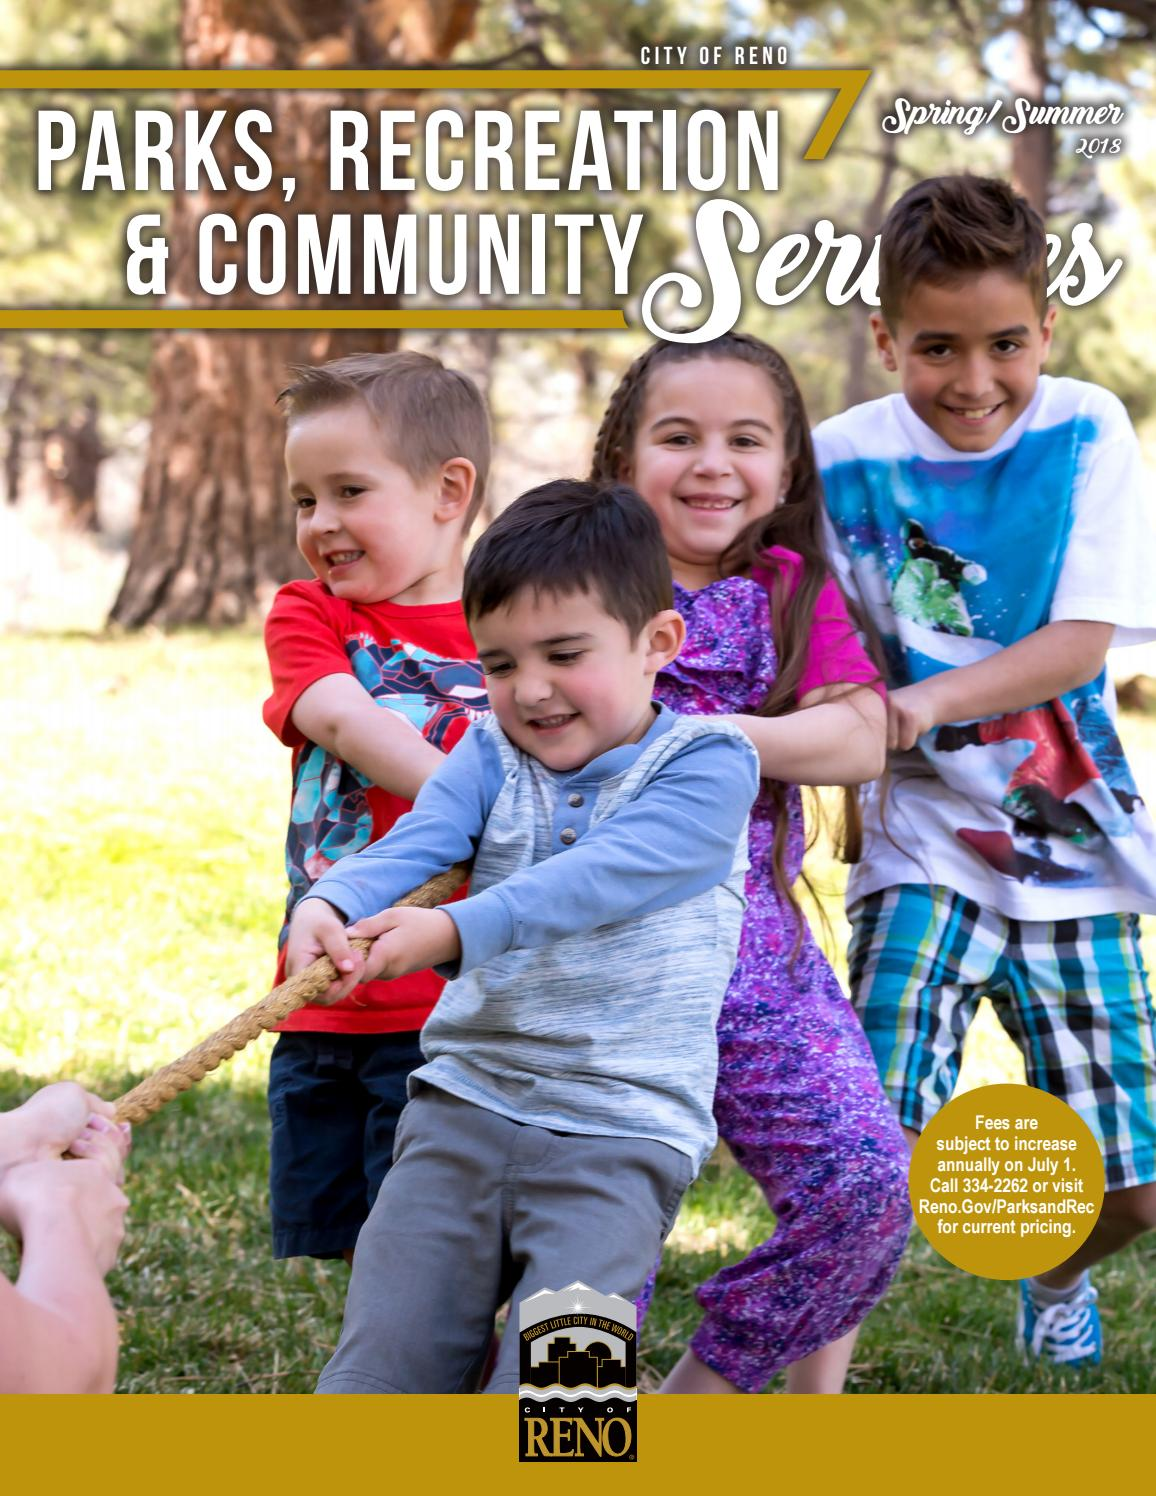 2018 Parks, Recreation and Community Services: Spring/Summer